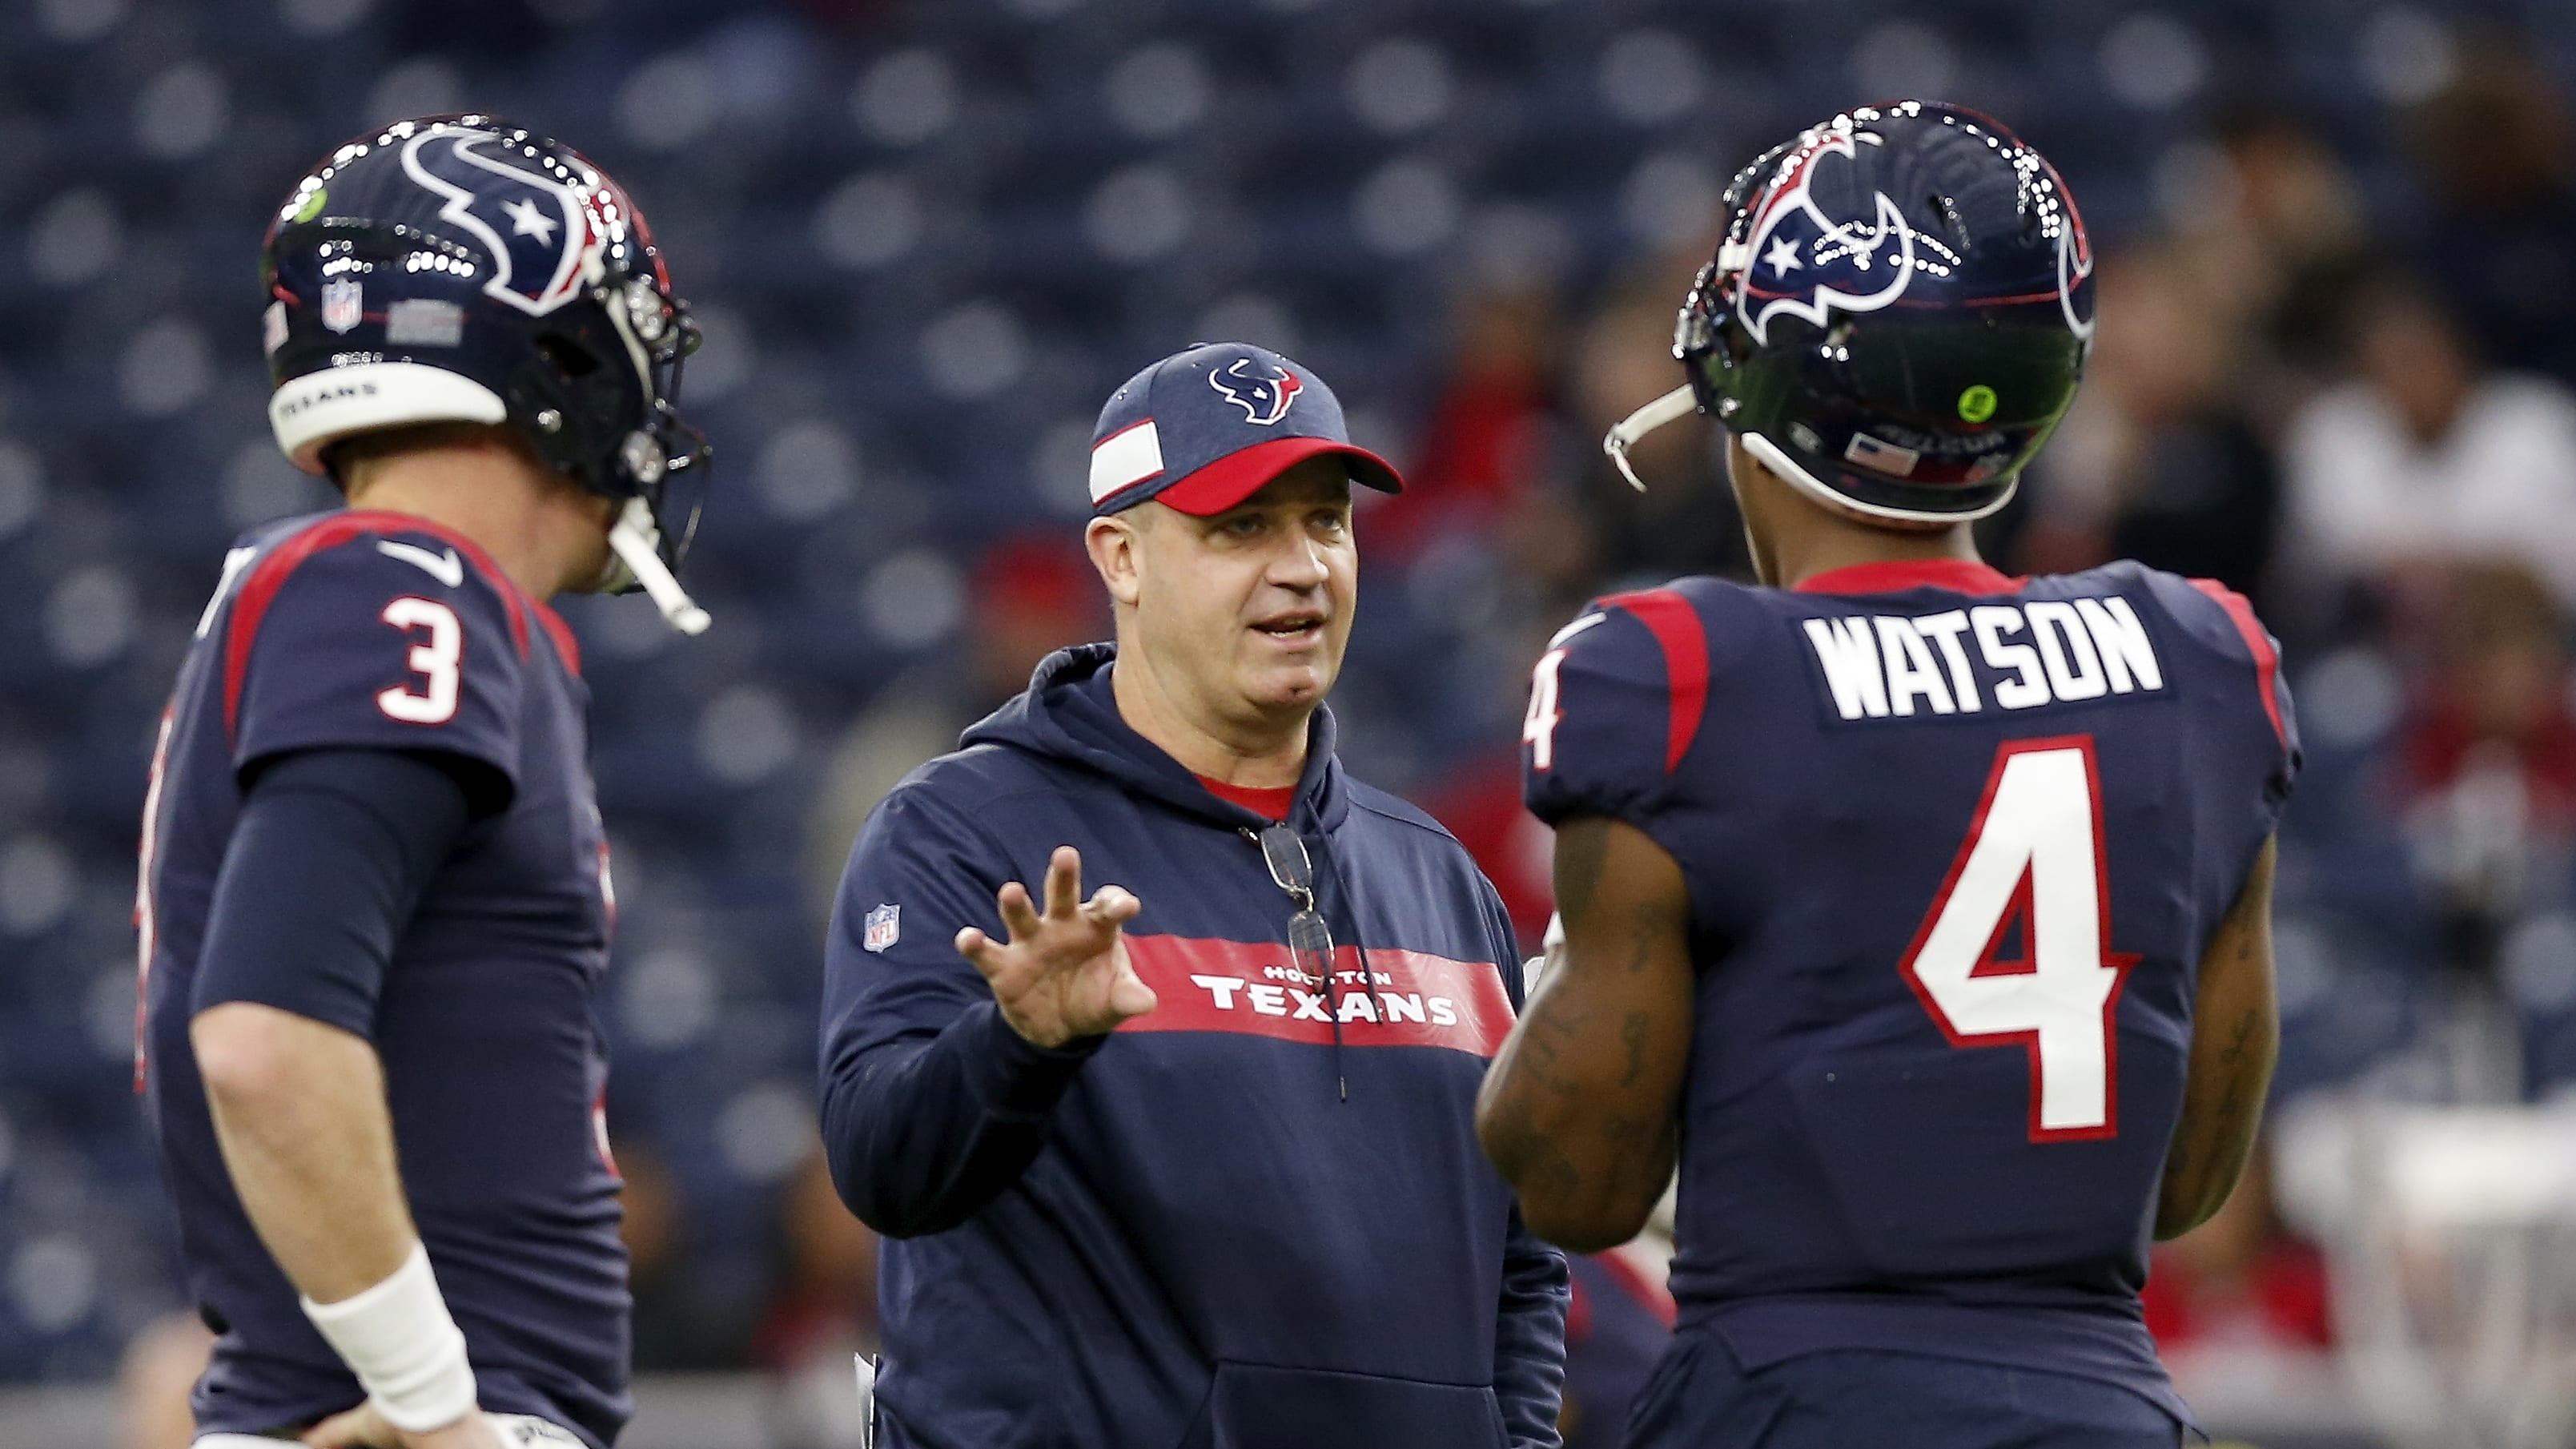 HOUSTON, TX - DECEMBER 30:  Head coach Bill O'Brien of the Houston Texans  talks with Deshaun Watson #4 and Brandon Weeden #3 before the game against the Jacksonville Jaguars at NRG Stadium on December 30, 2018 in Houston, Texas.  (Photo by Tim Warner/Getty Images)